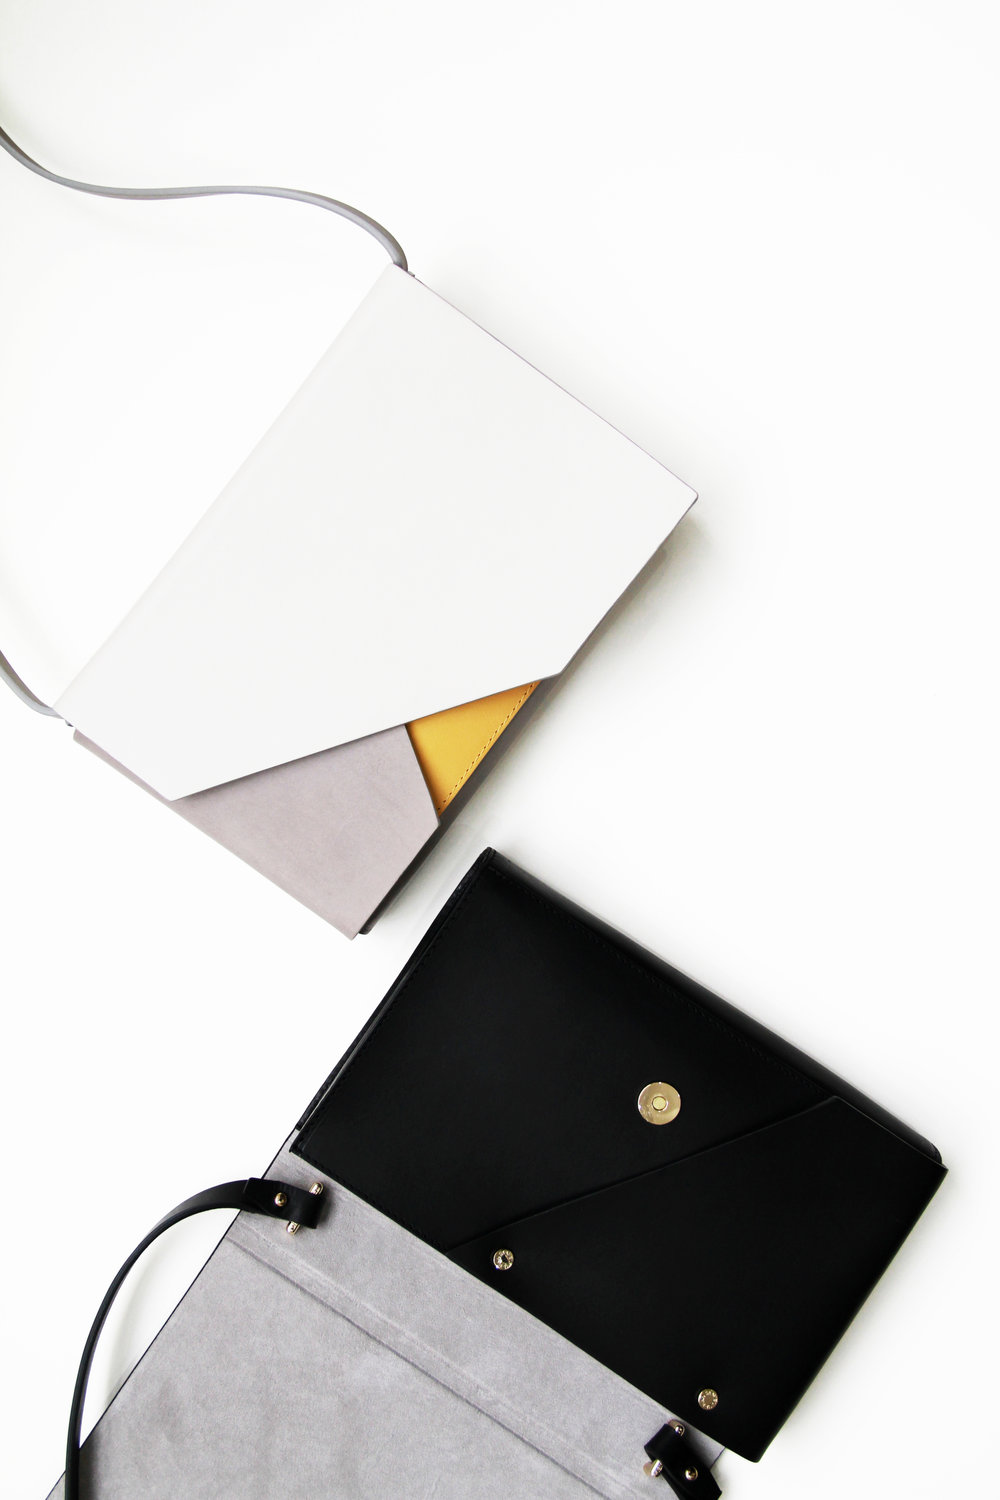 Evo Leather Clutch duo black and combo -Urban Travel x Isabel Wong V2.jpg